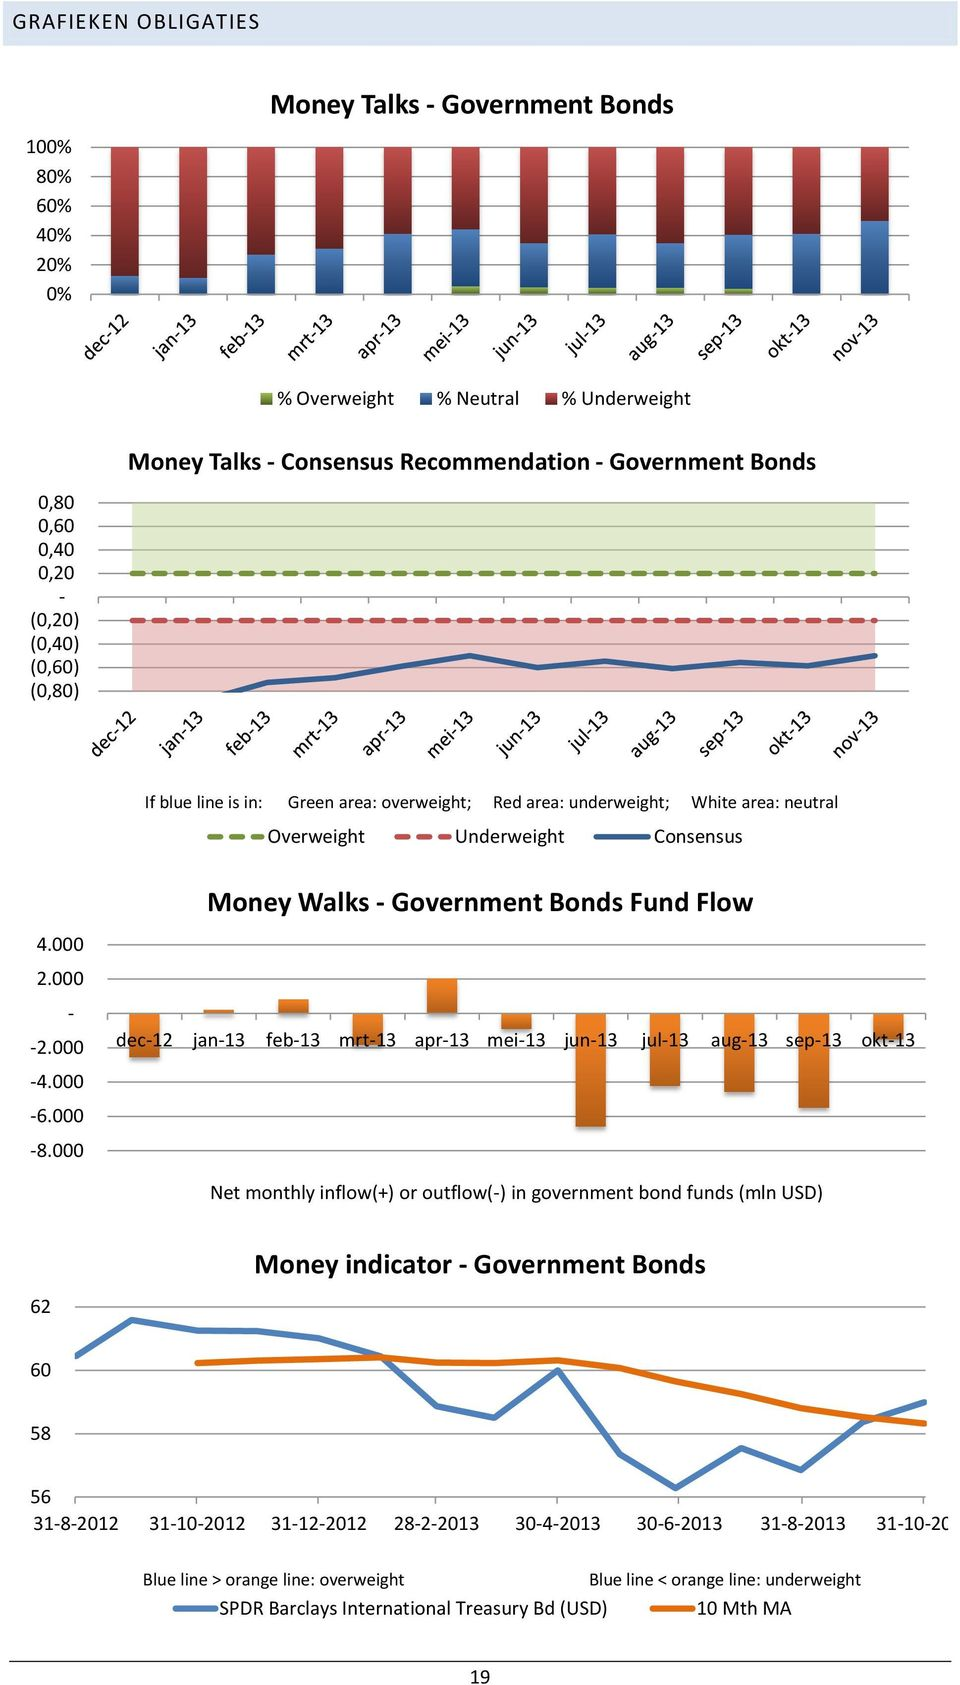 000 Money Walks Government Bonds Fund Flow dec12 jan13 feb13 mrt13 apr13 mei13 jun13 jul13 aug13 sep13 okt13 Net monthly inflow(+) or